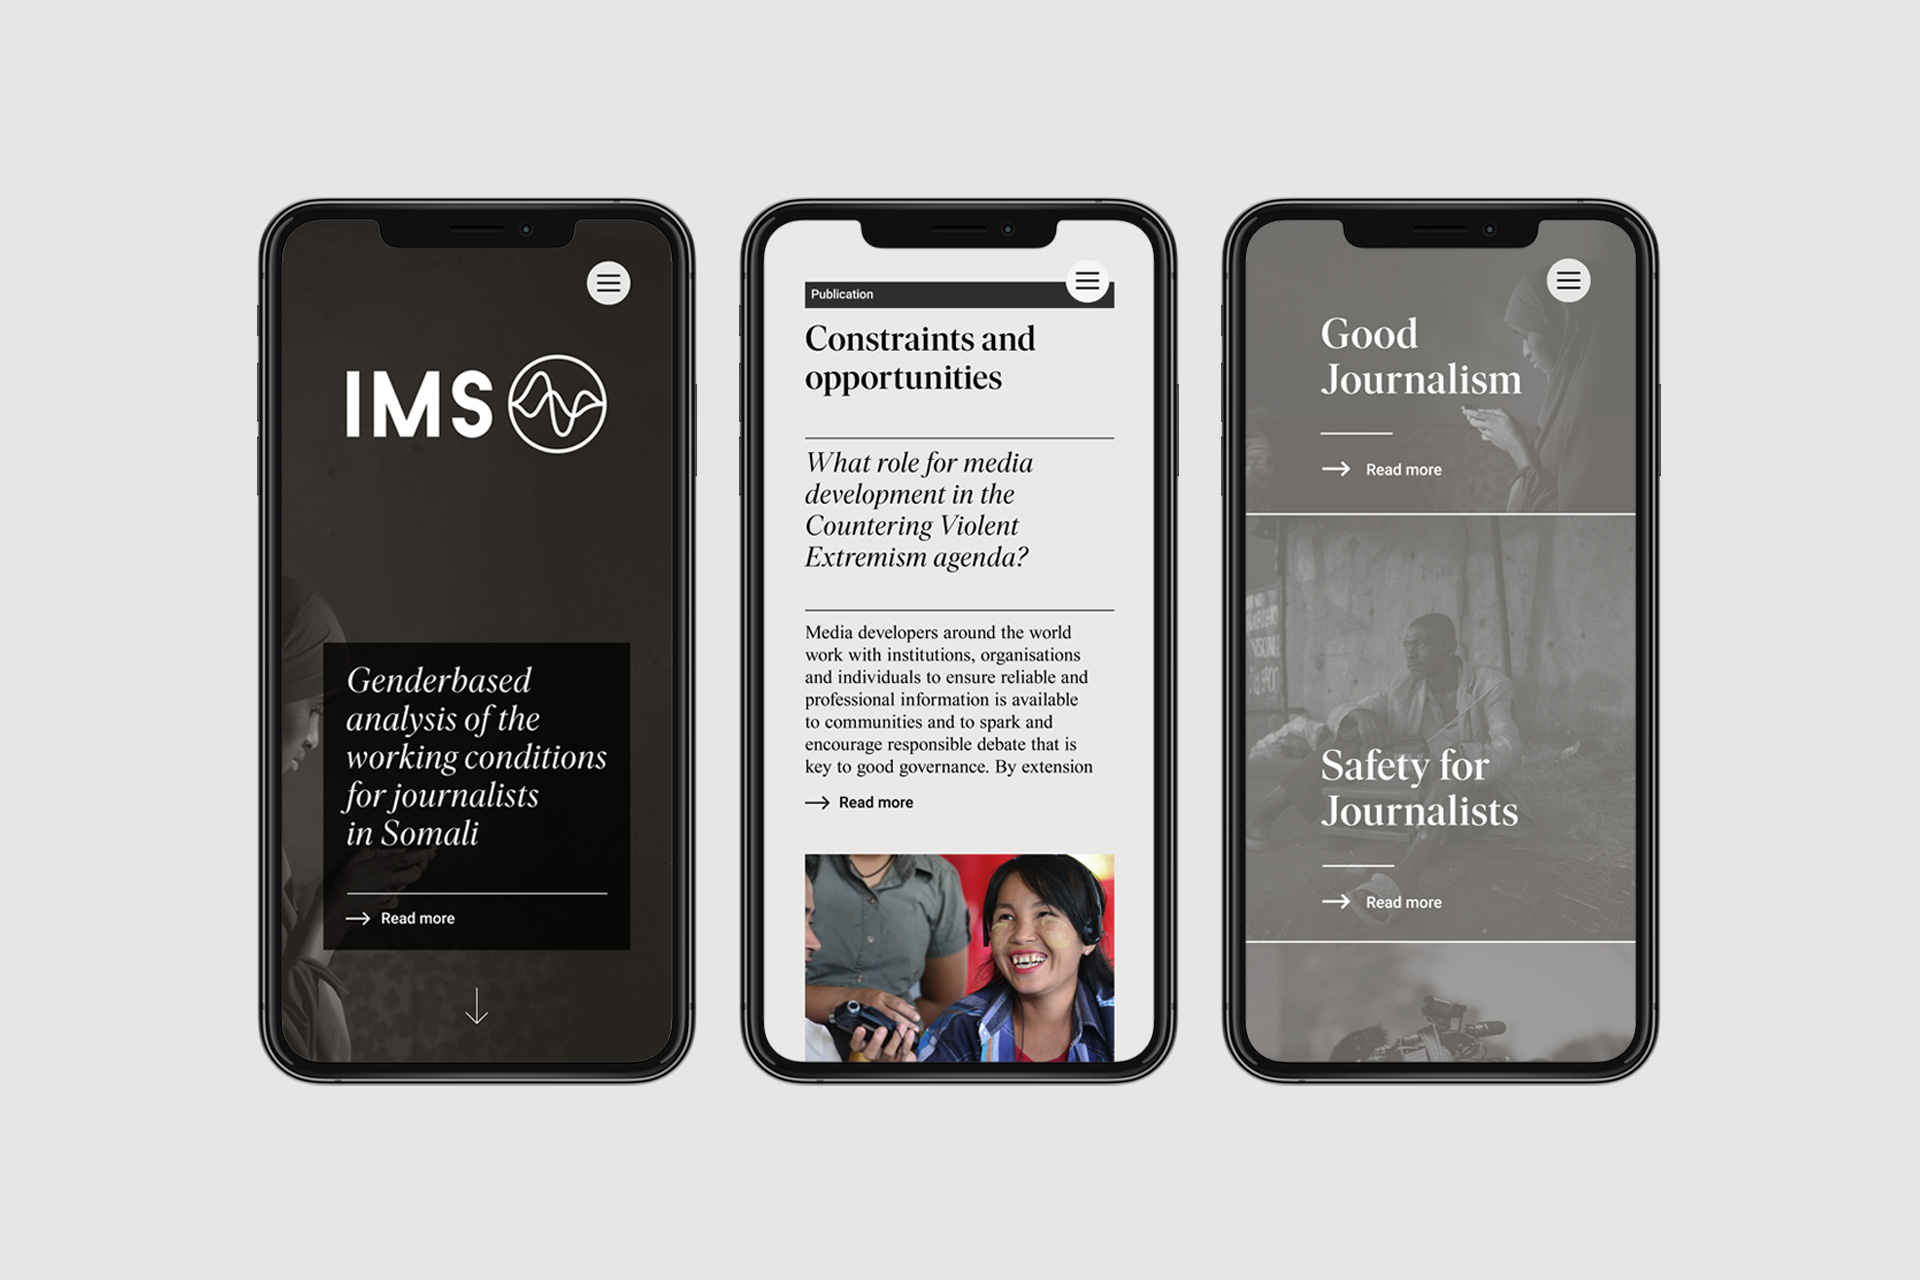 IMS_webpages_07